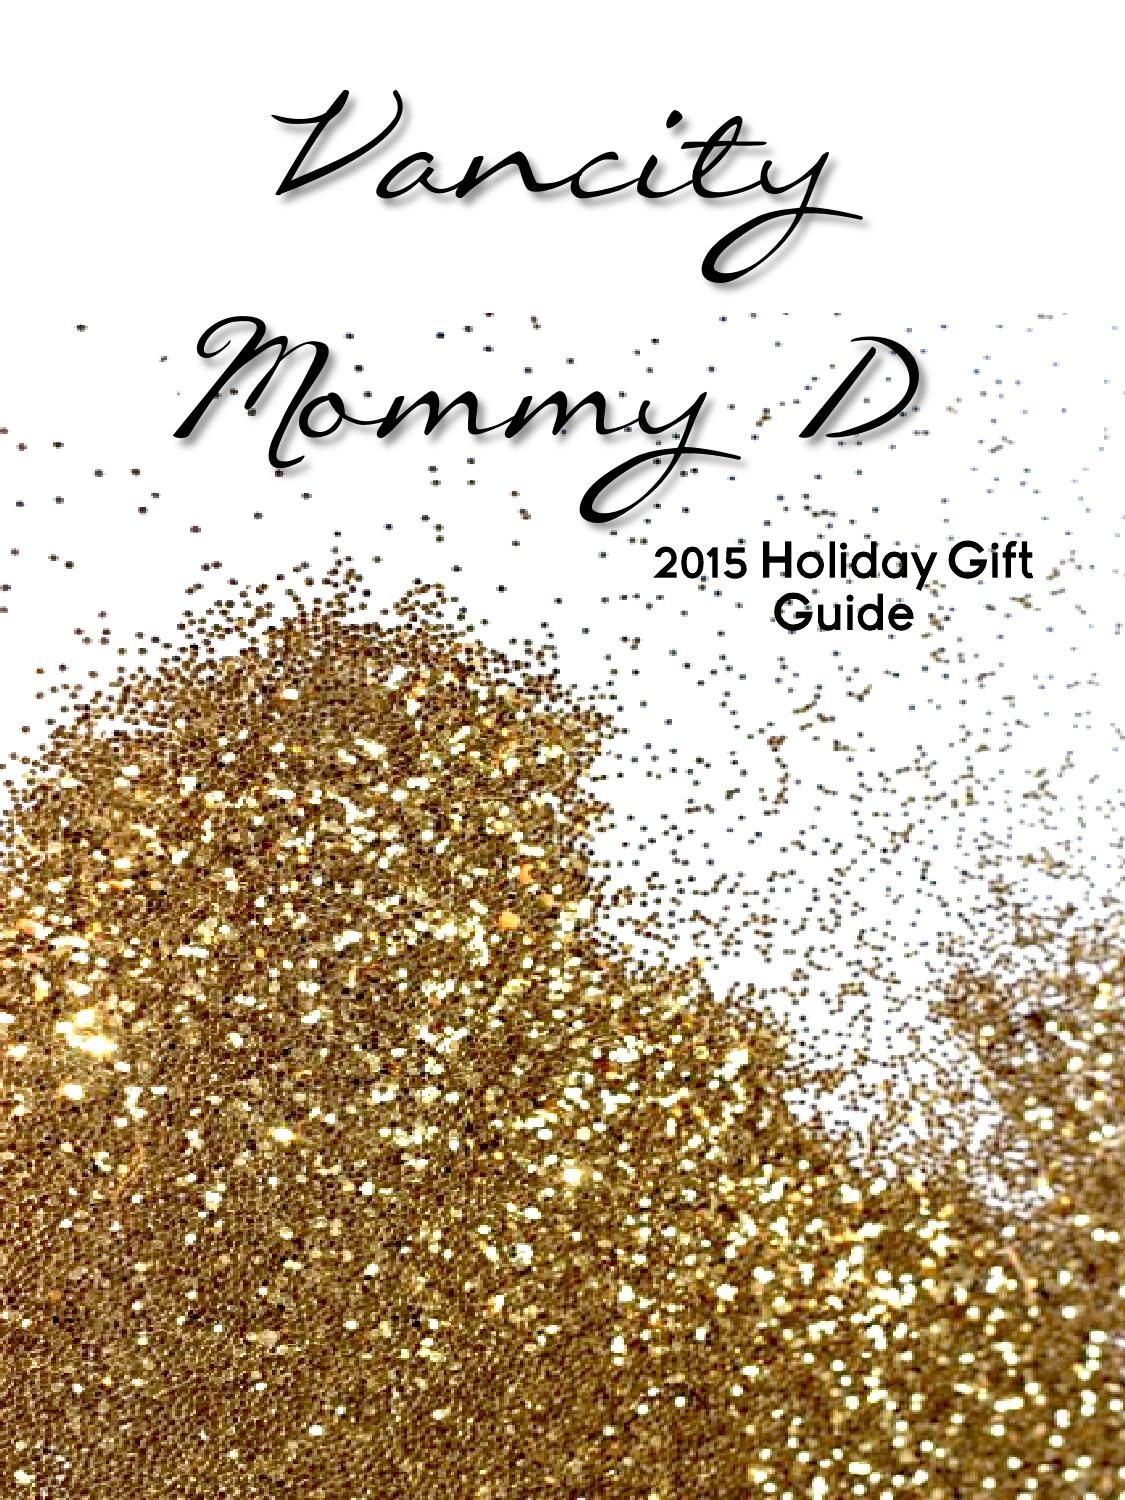 Vancity Mommy D Holiday Catalog  We hope you enjoy our first ever Holiday Catalog featuring all the best products from our favourite Canadian companies of 2015. Enjoy!